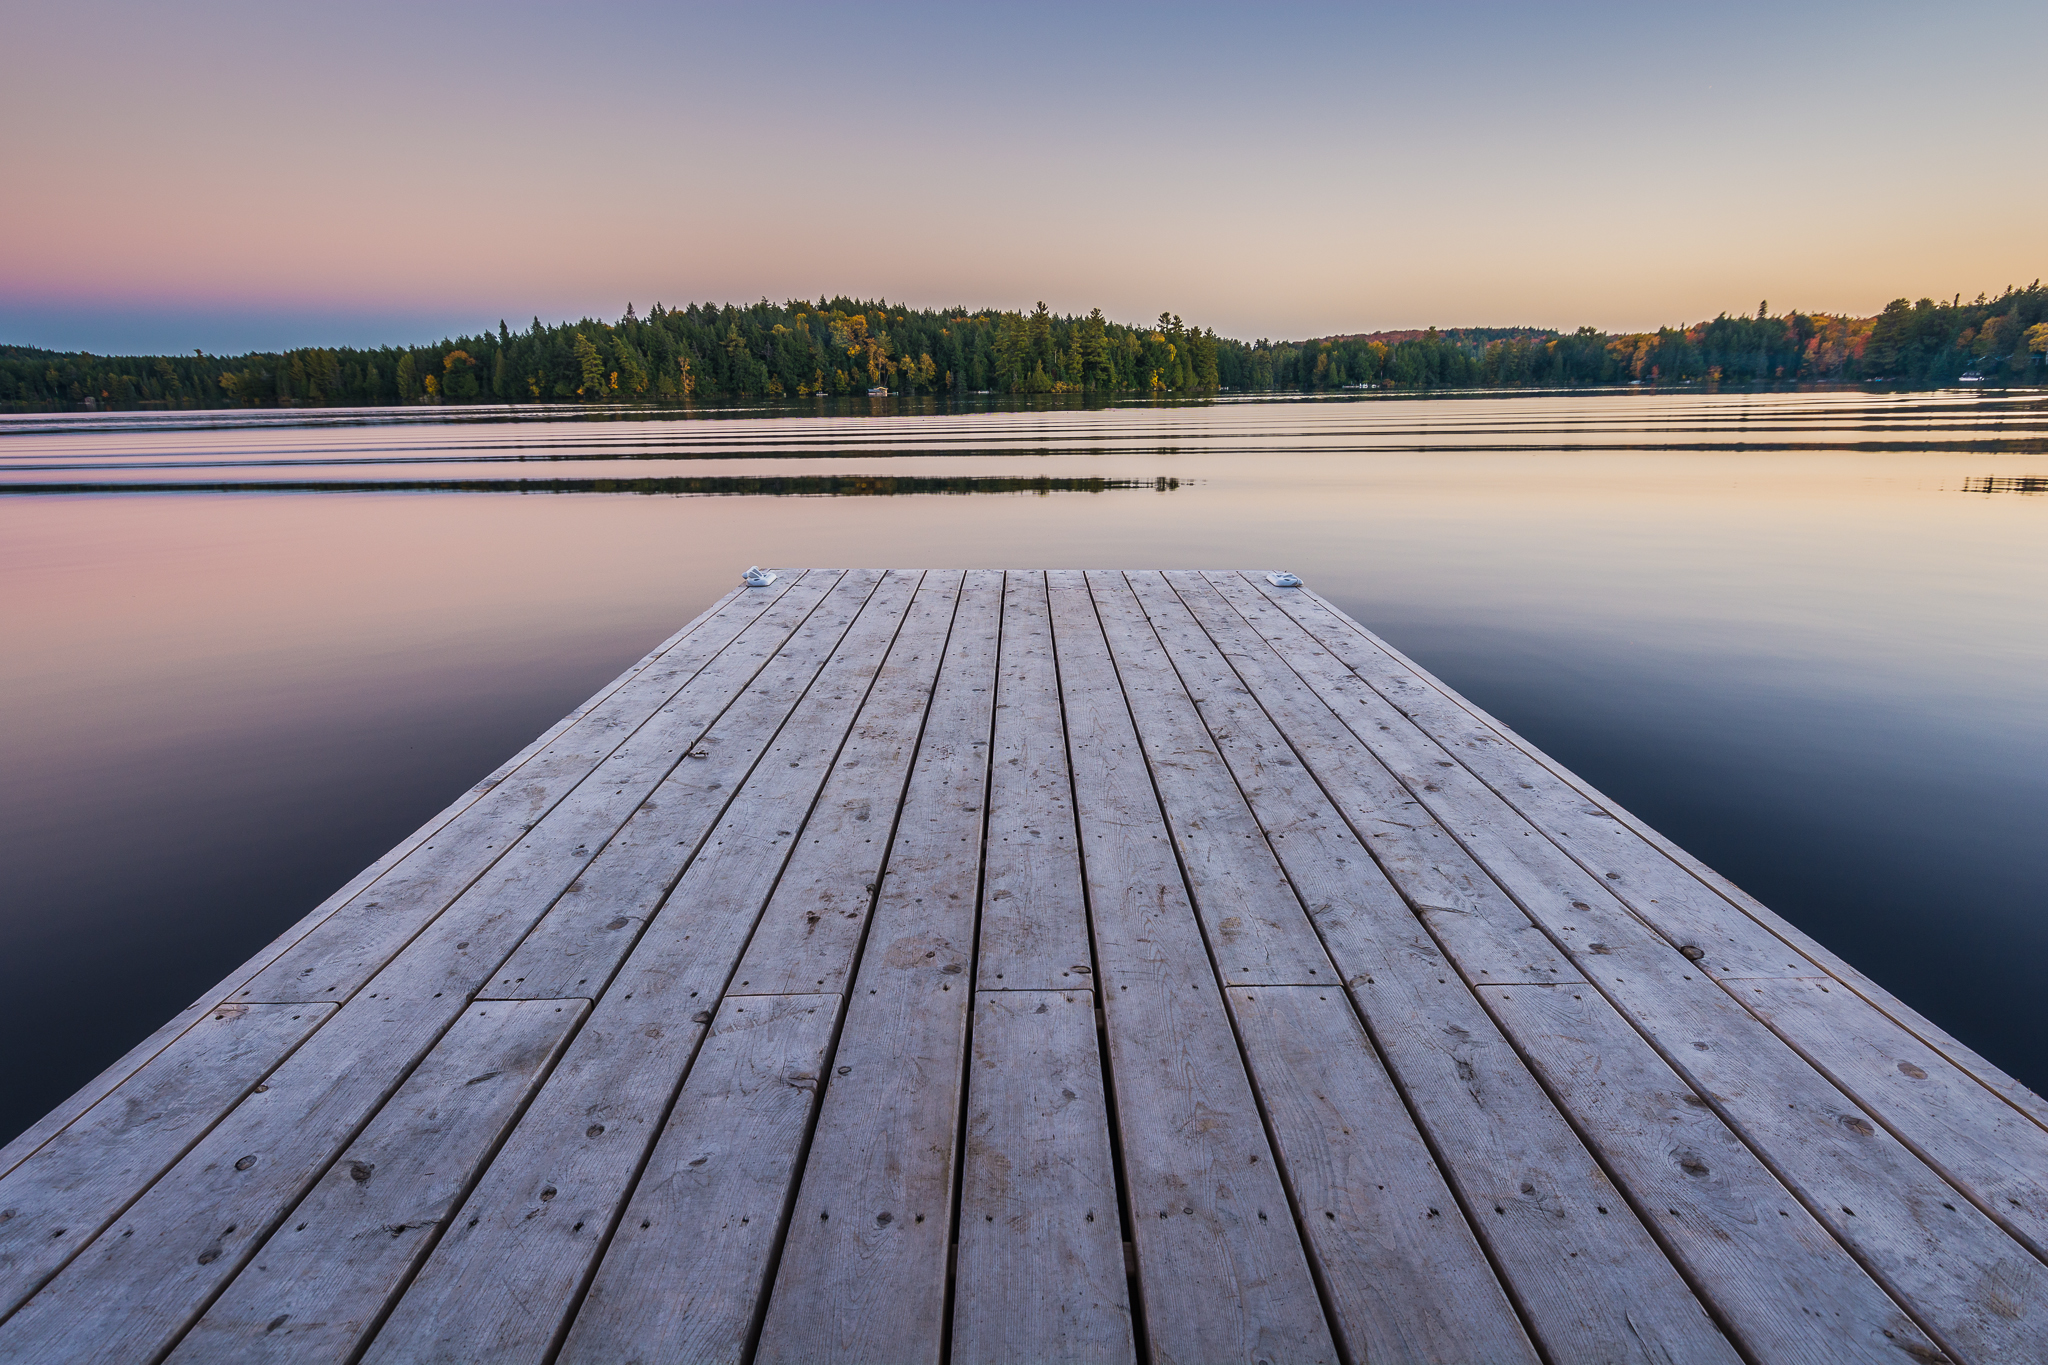 Dock at Cache Lake (1/6s, f/8, ISO100)